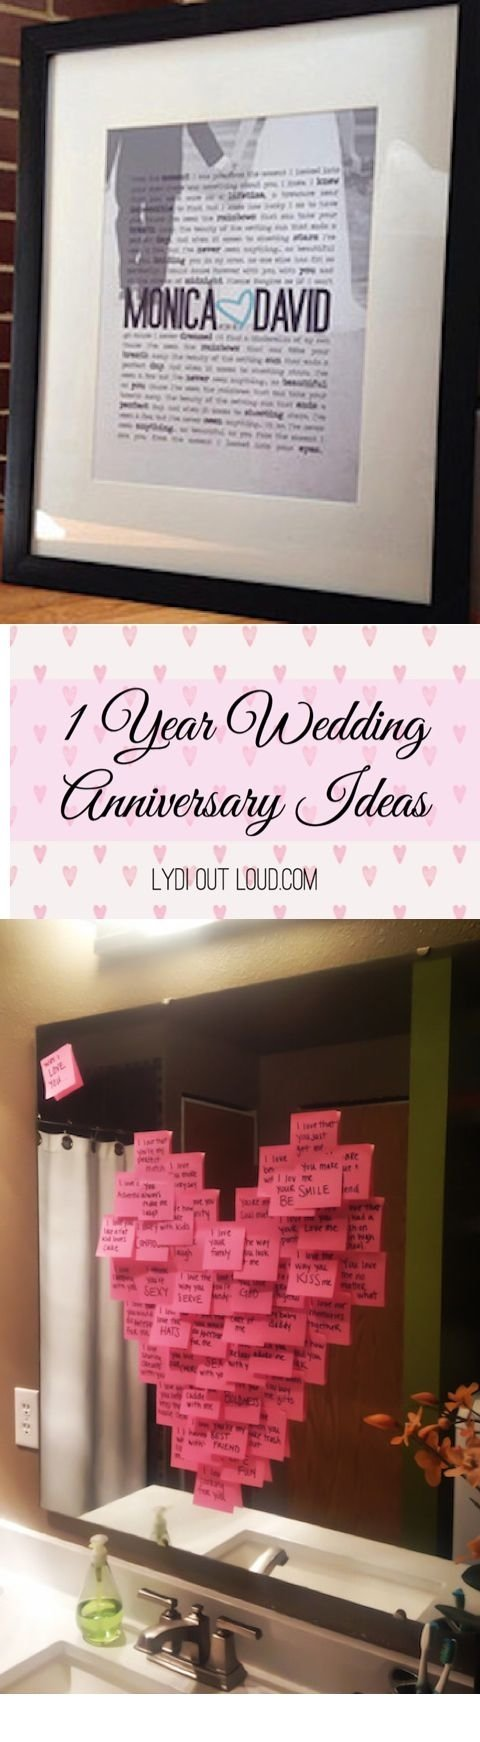 10 Beautiful 3 Year Anniversary Ideas For Her one year wedding anniversary gifts wedding photography 2021